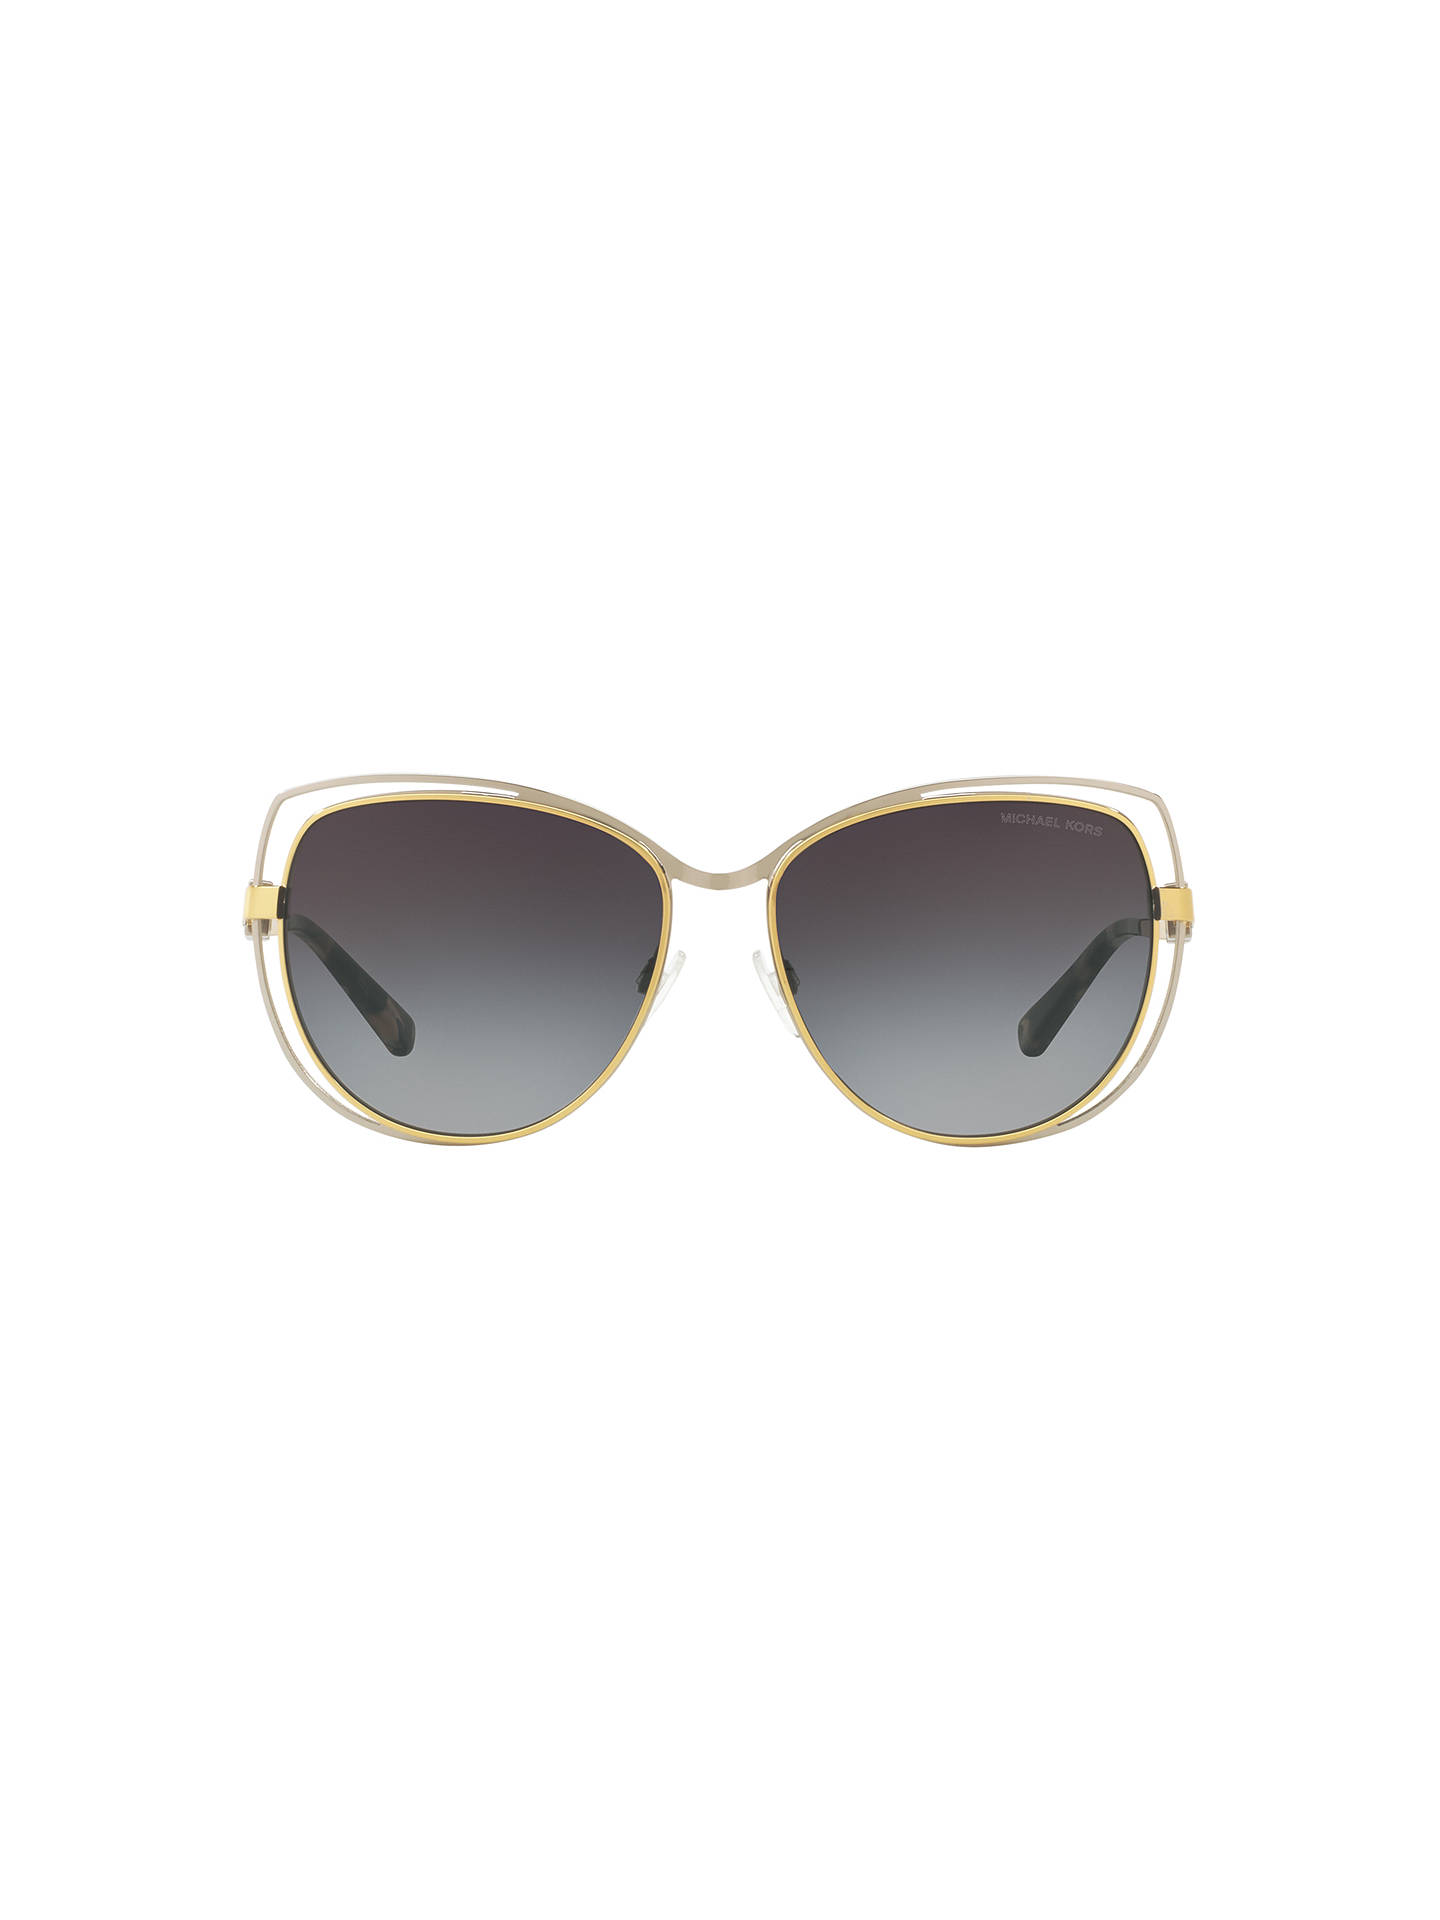 BuyMichael Kors MK1013 Audrina I Cat's Eye Sunglasses, Gold/Silver Online at johnlewis.com